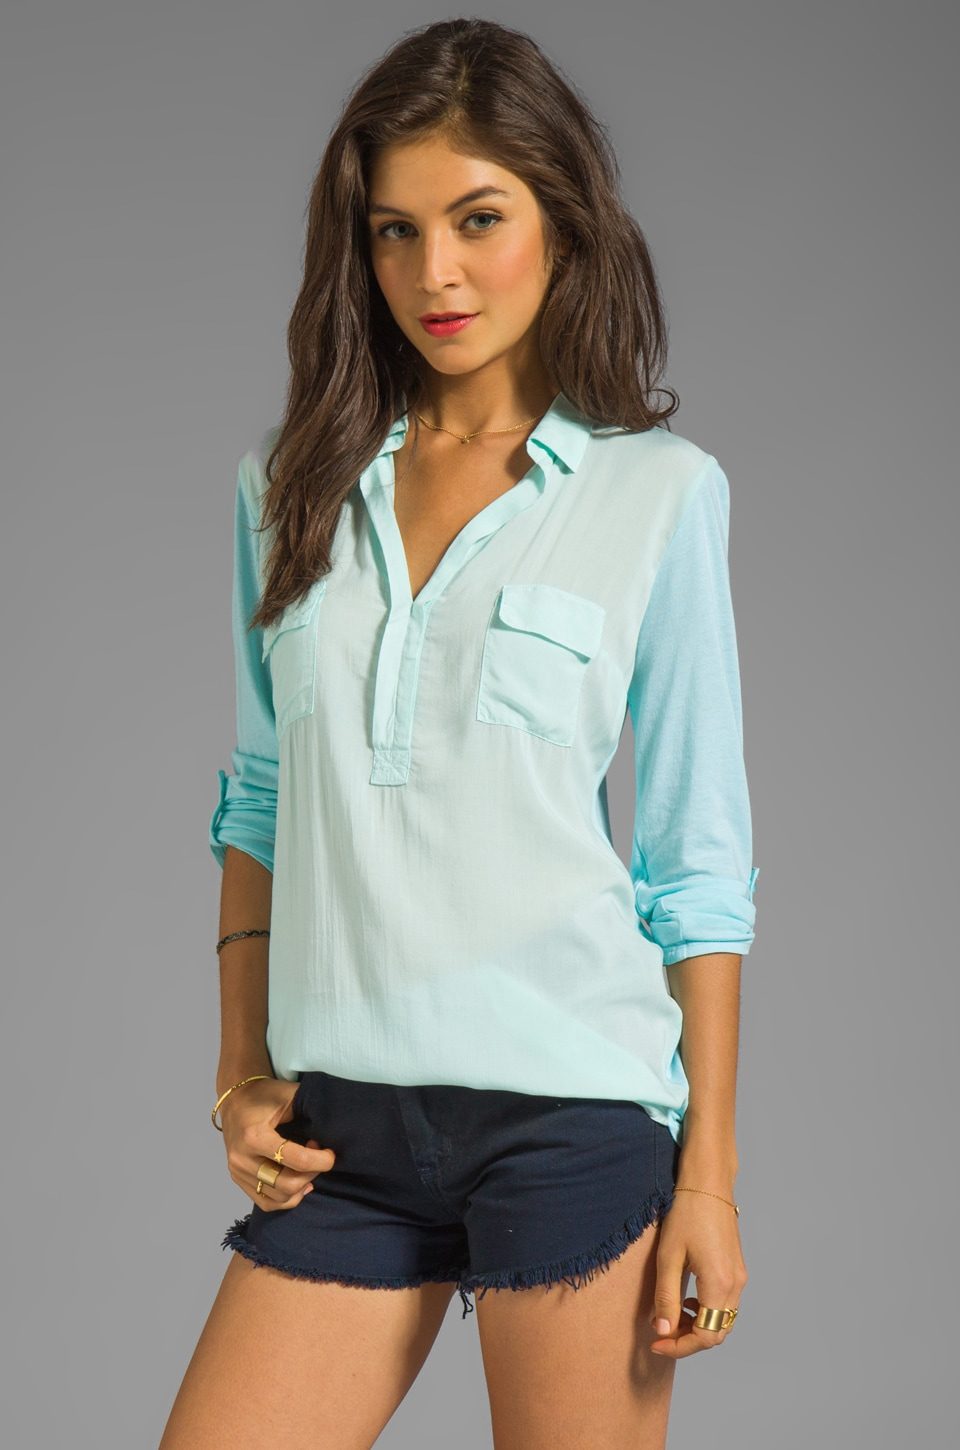 Splendid Shirting Collared Top in Feather Blue